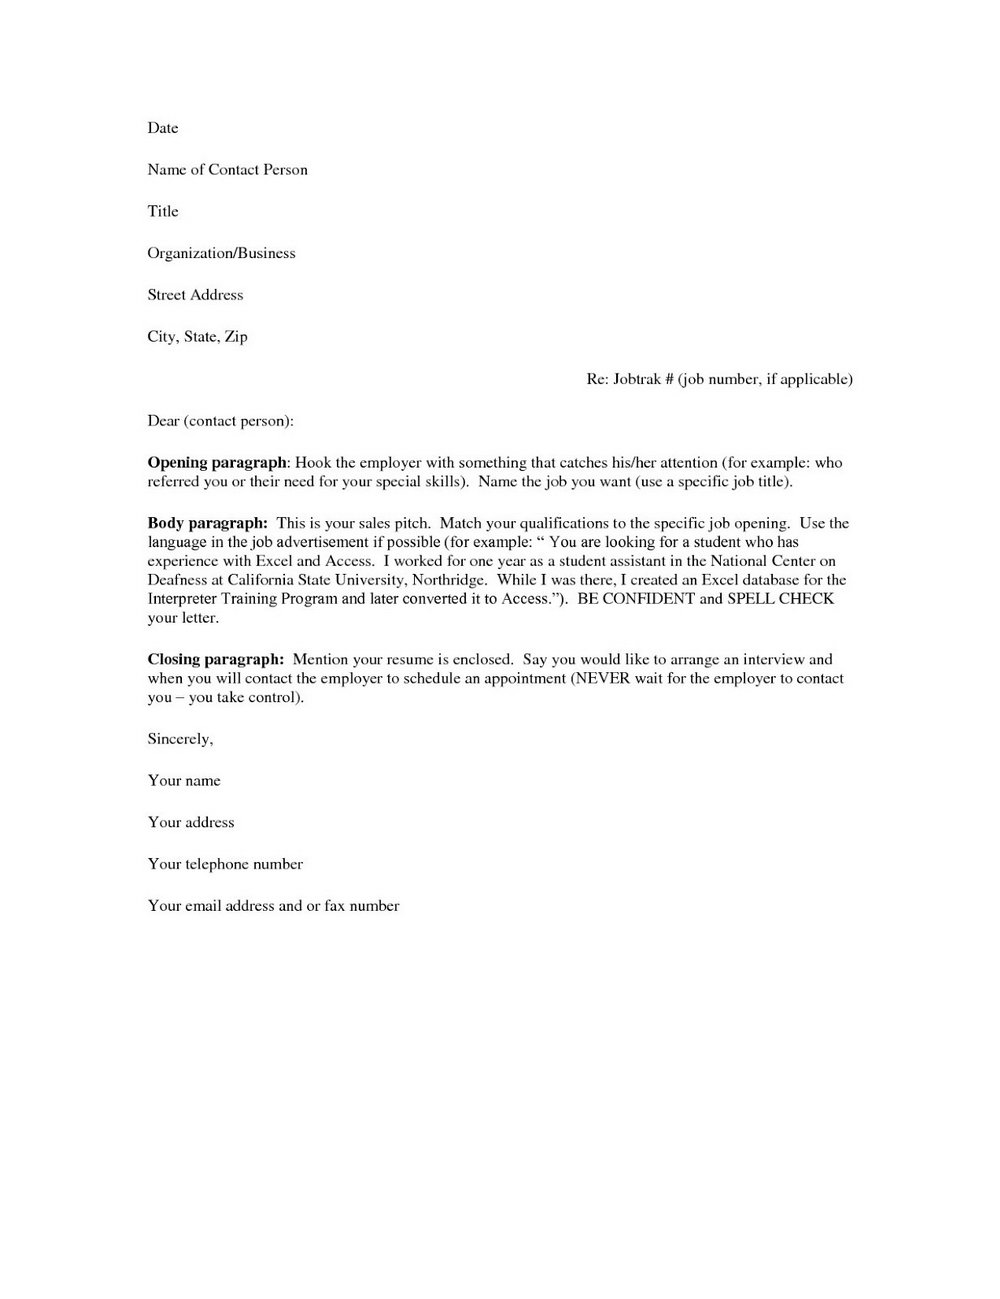 Templates For Resumes And Cover Letters